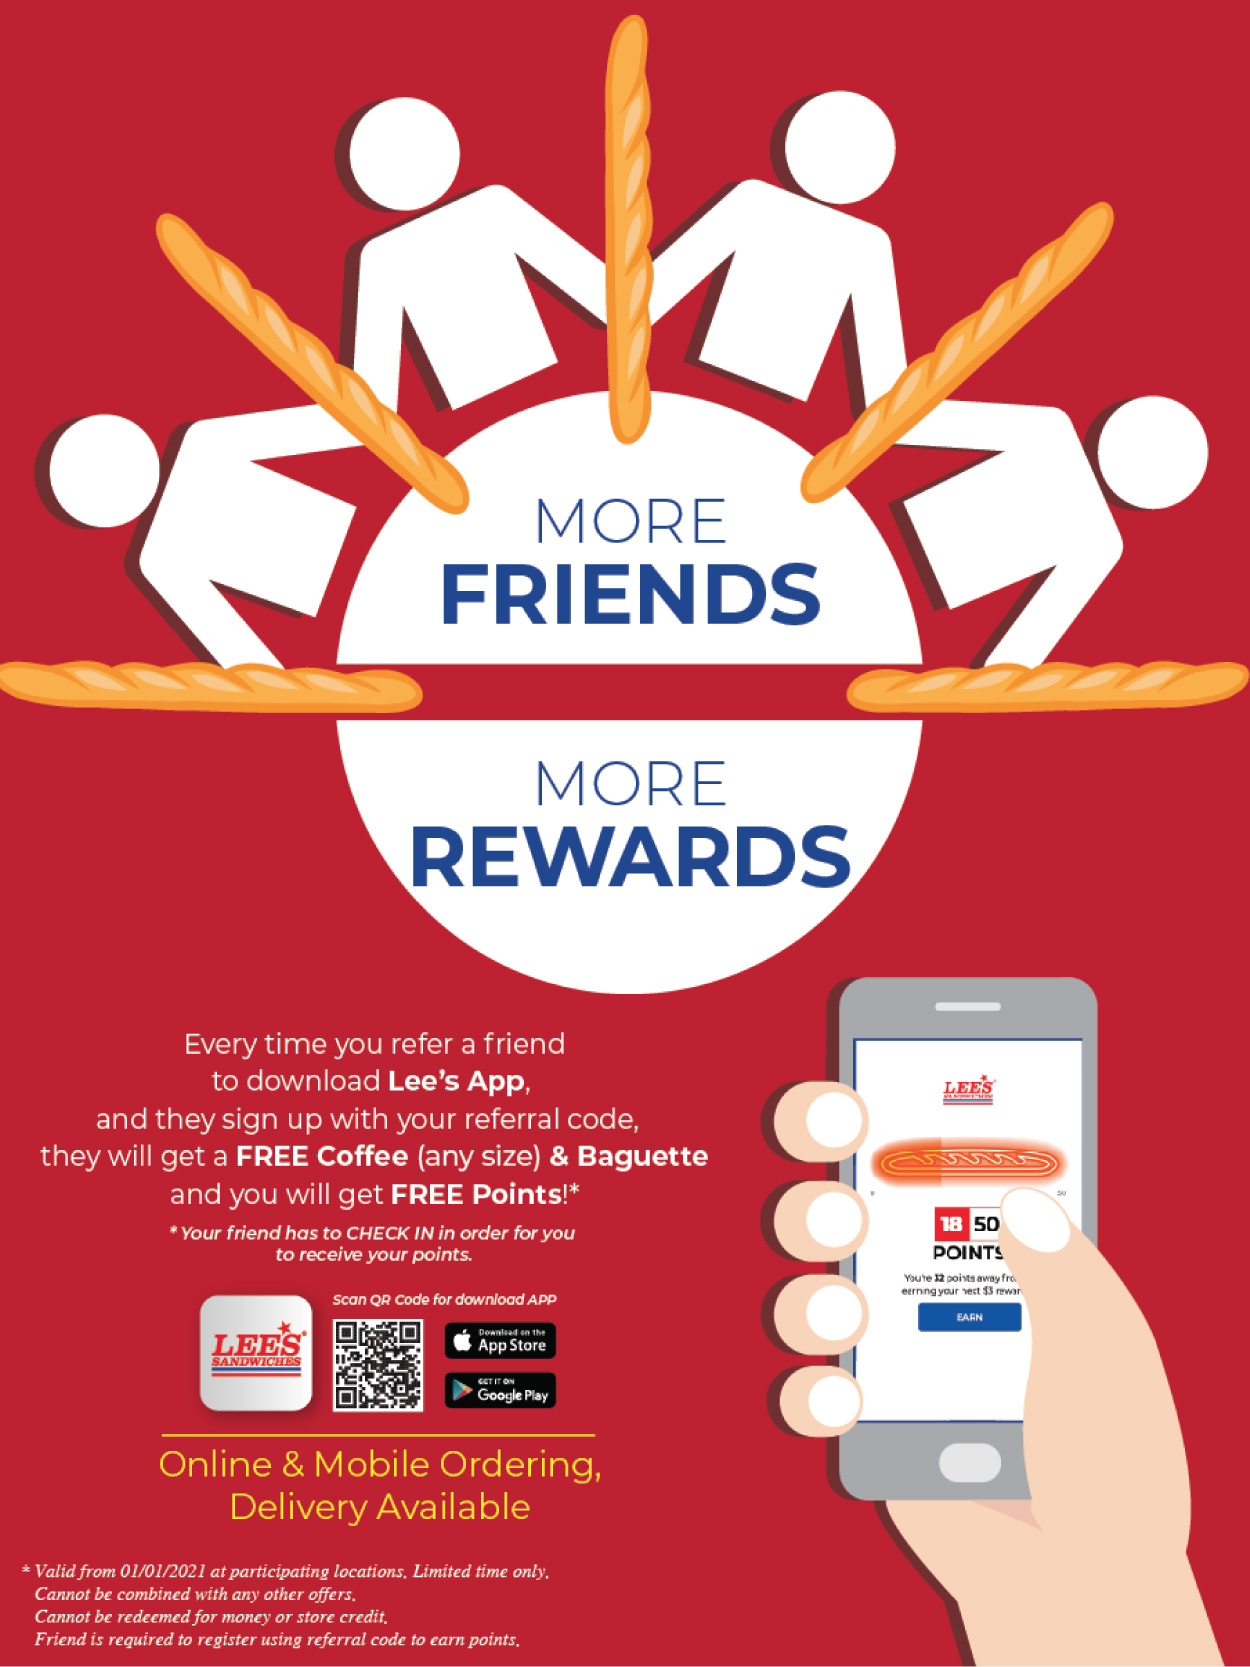 Refer more friends, get more rewards! From 1.1.2021